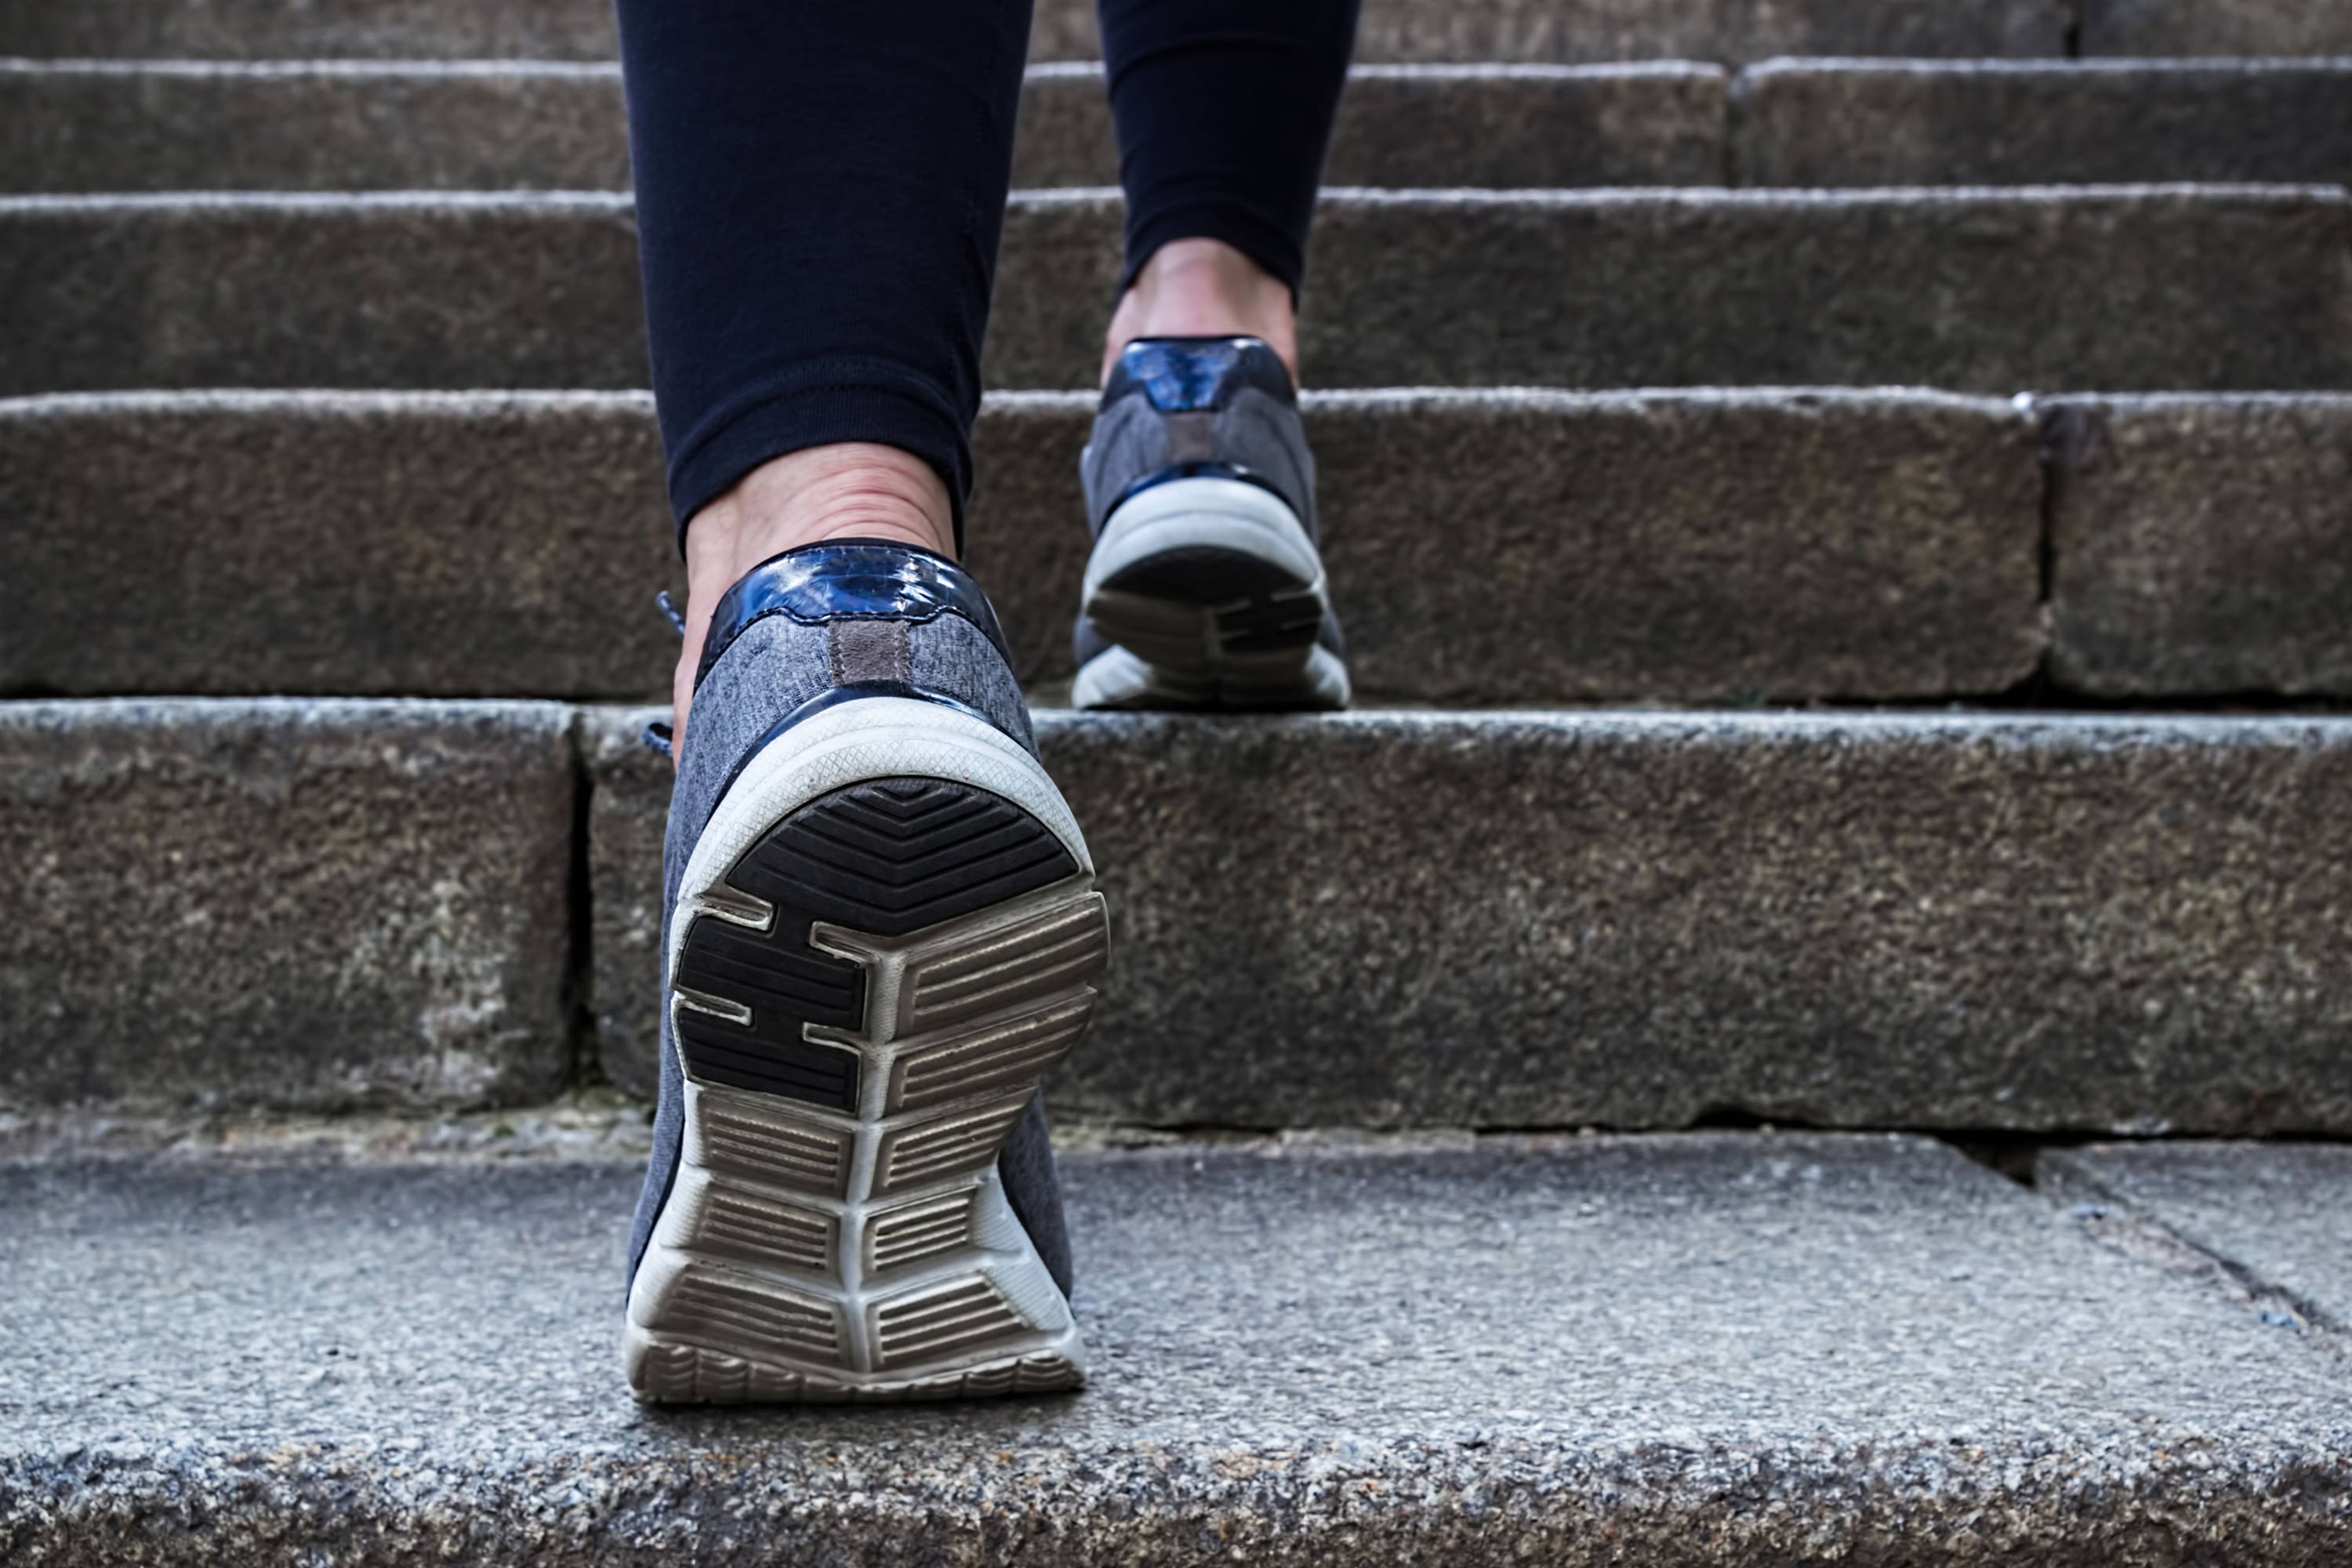 Stairmaster Exercise to Lose Weight